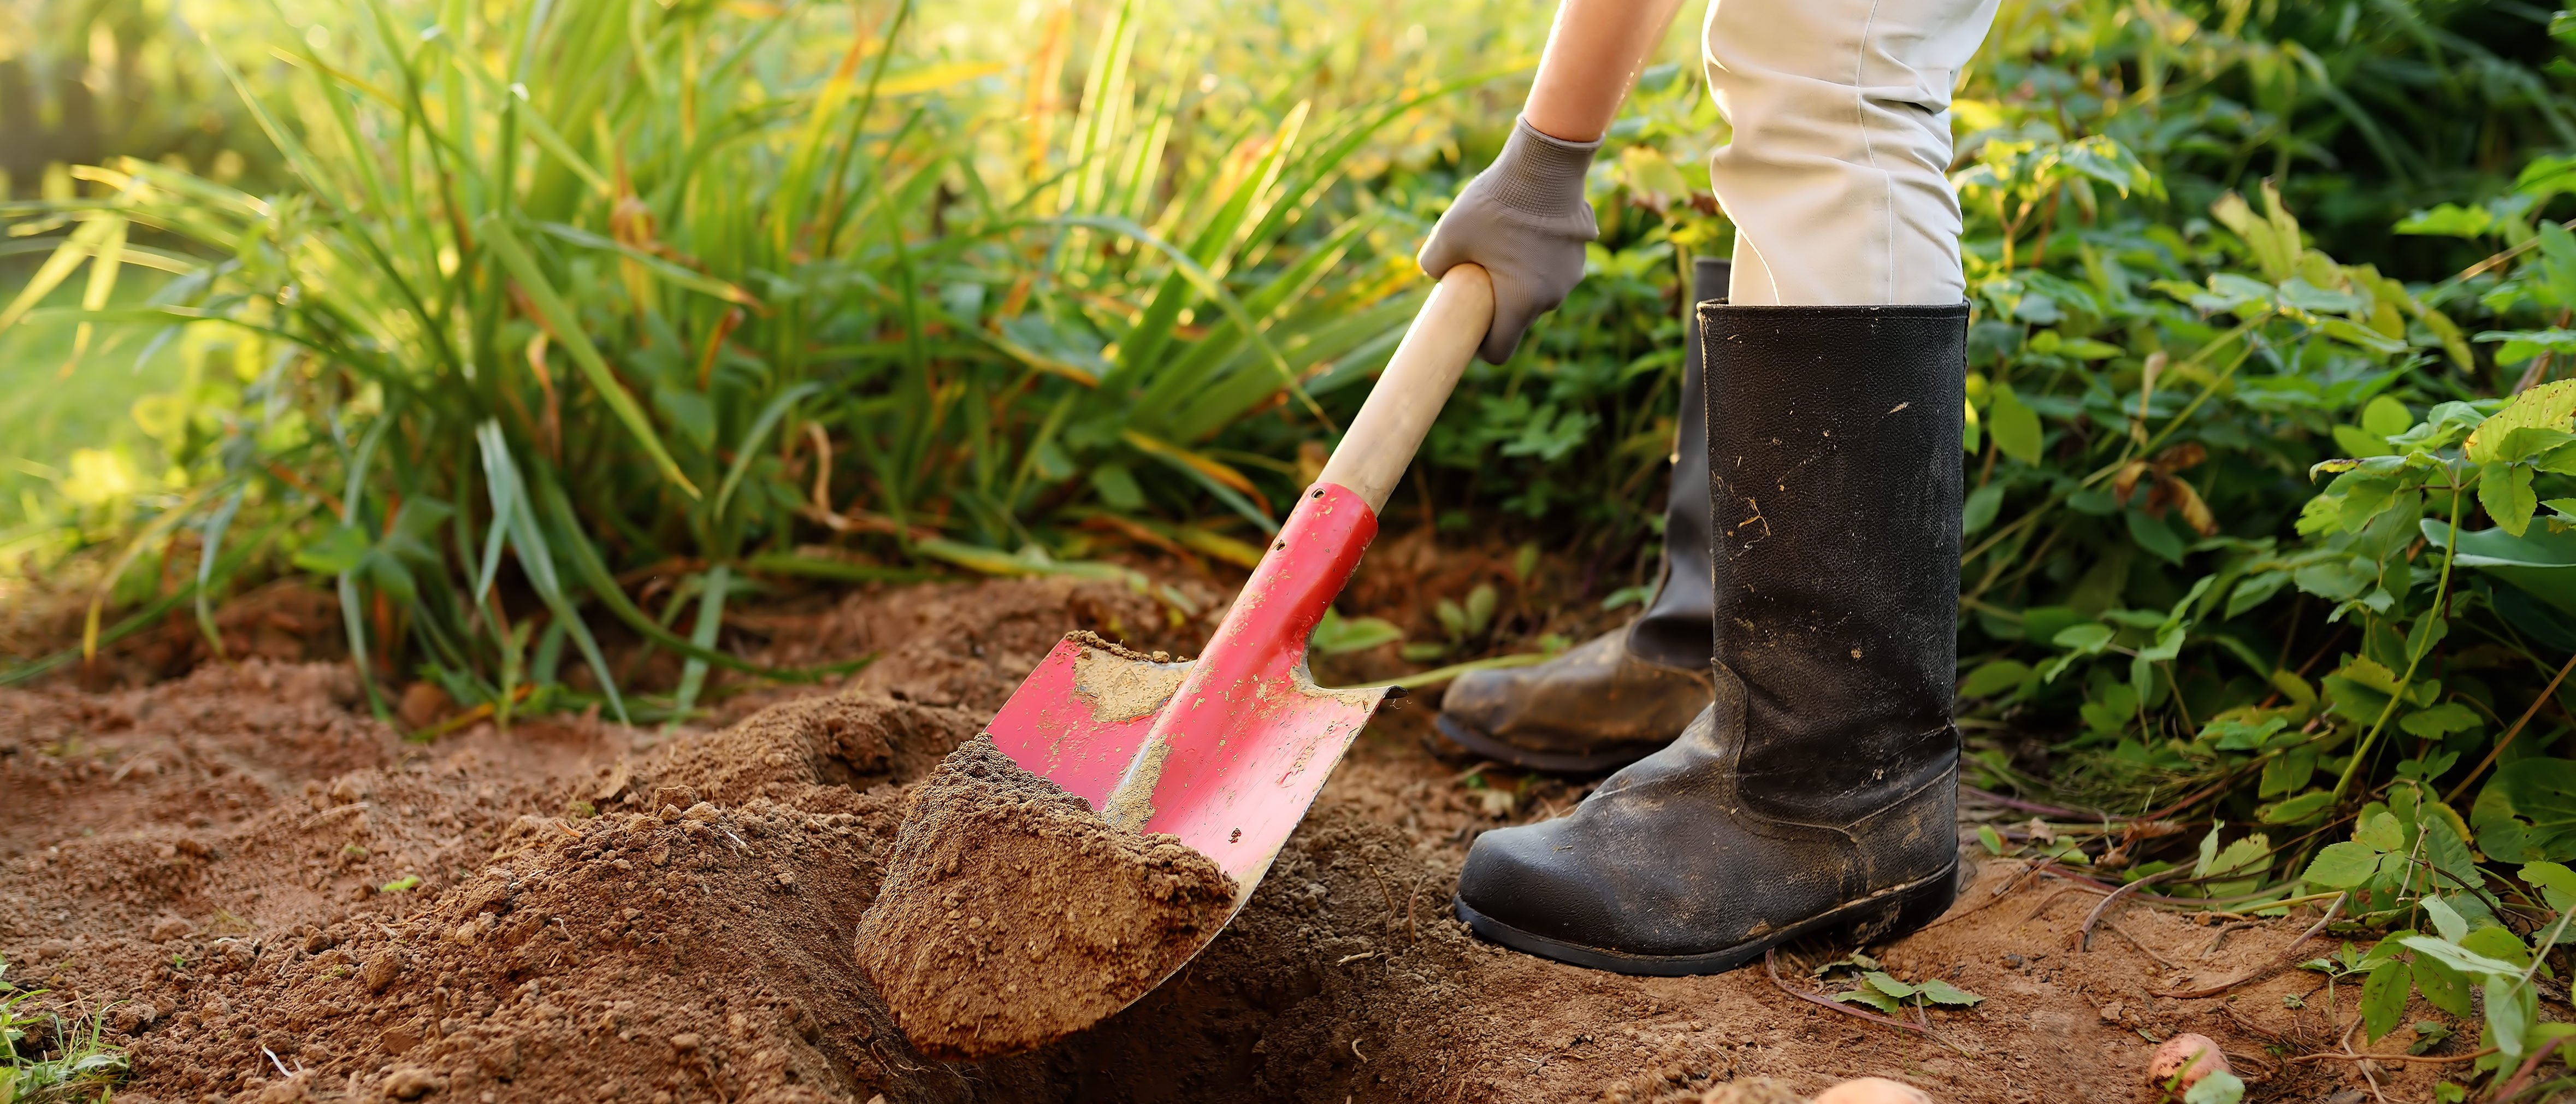 An Arizona man allegedly buried his 97-year-old mom in the backyard so that he could continue collecting her benefits, police say. (Maria Sbytova/Shutterstock)